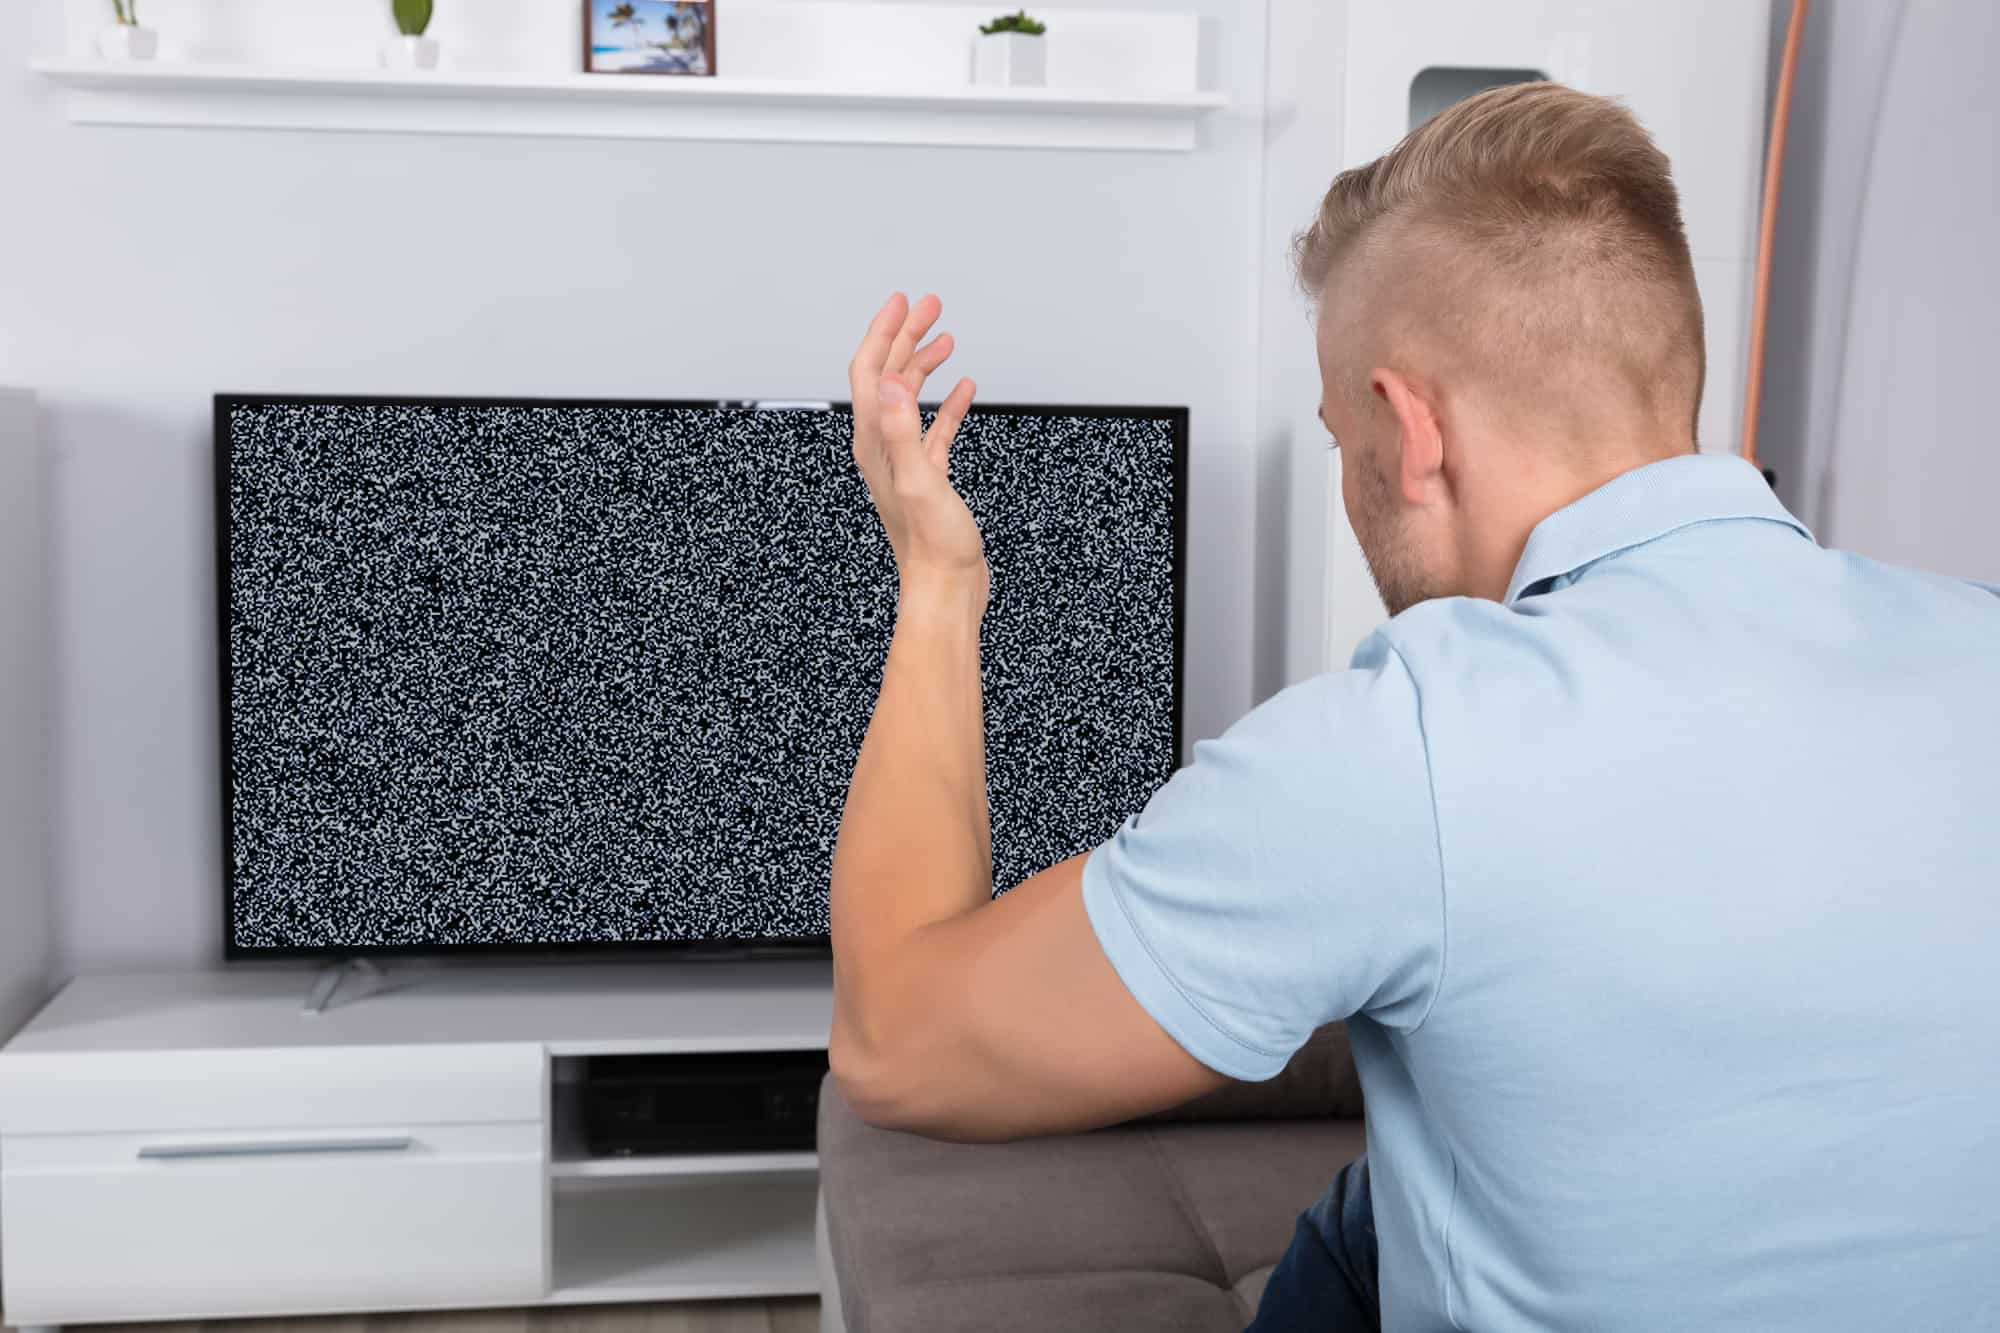 Blonde man wearing powder blue polo shirt getting no cable TV